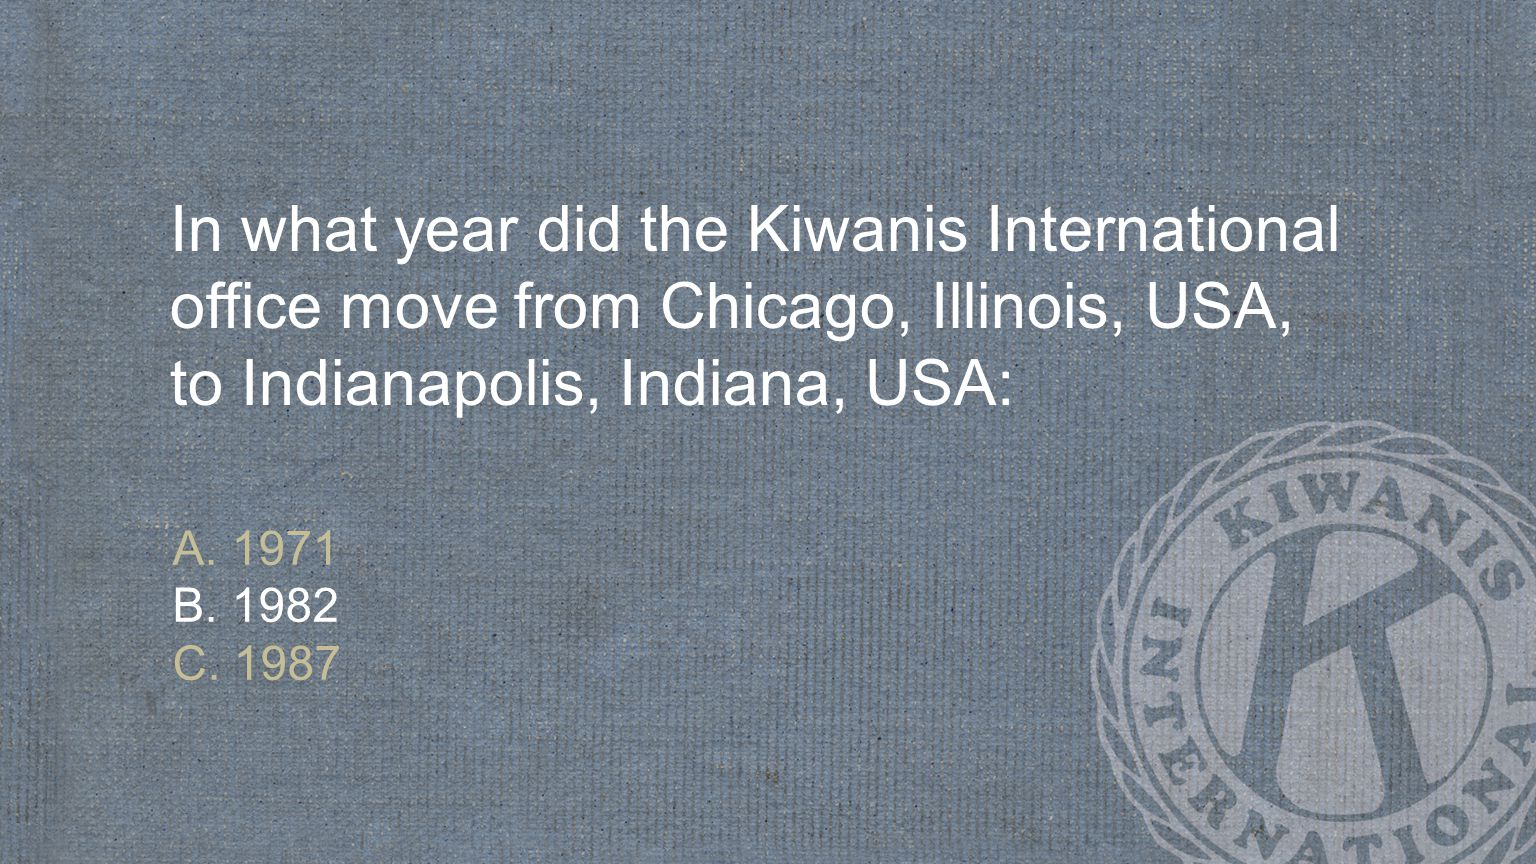 In what year did the Kiwanis International office move from Chicago, Illinois, USA, to Indianapolis, Indiana, USA: